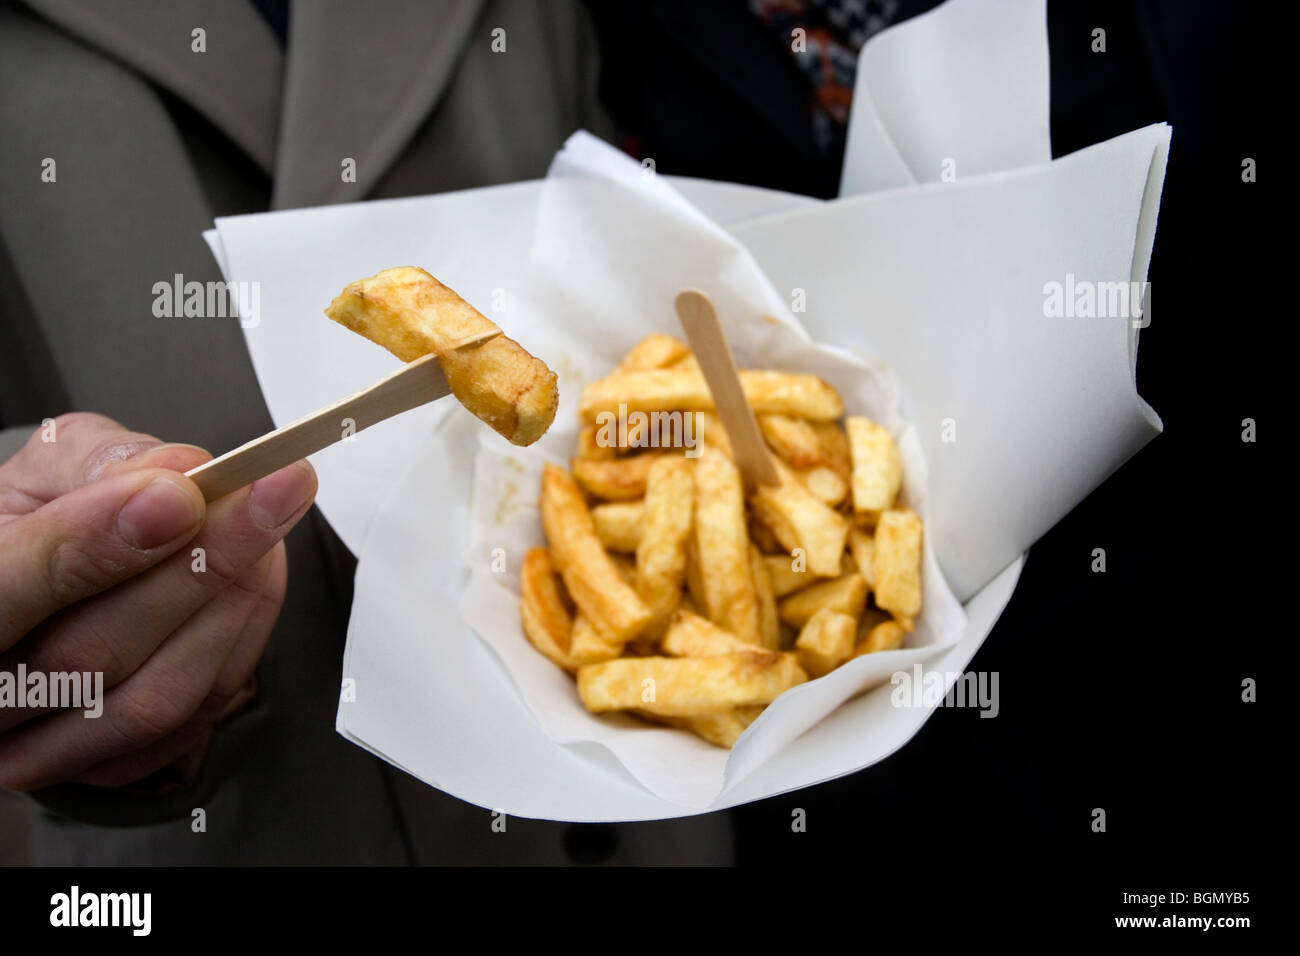 A young couple enjoy a small portion of chips outside Bankers Traditional Fish and Chip restaurant and take-away, - Stock Image